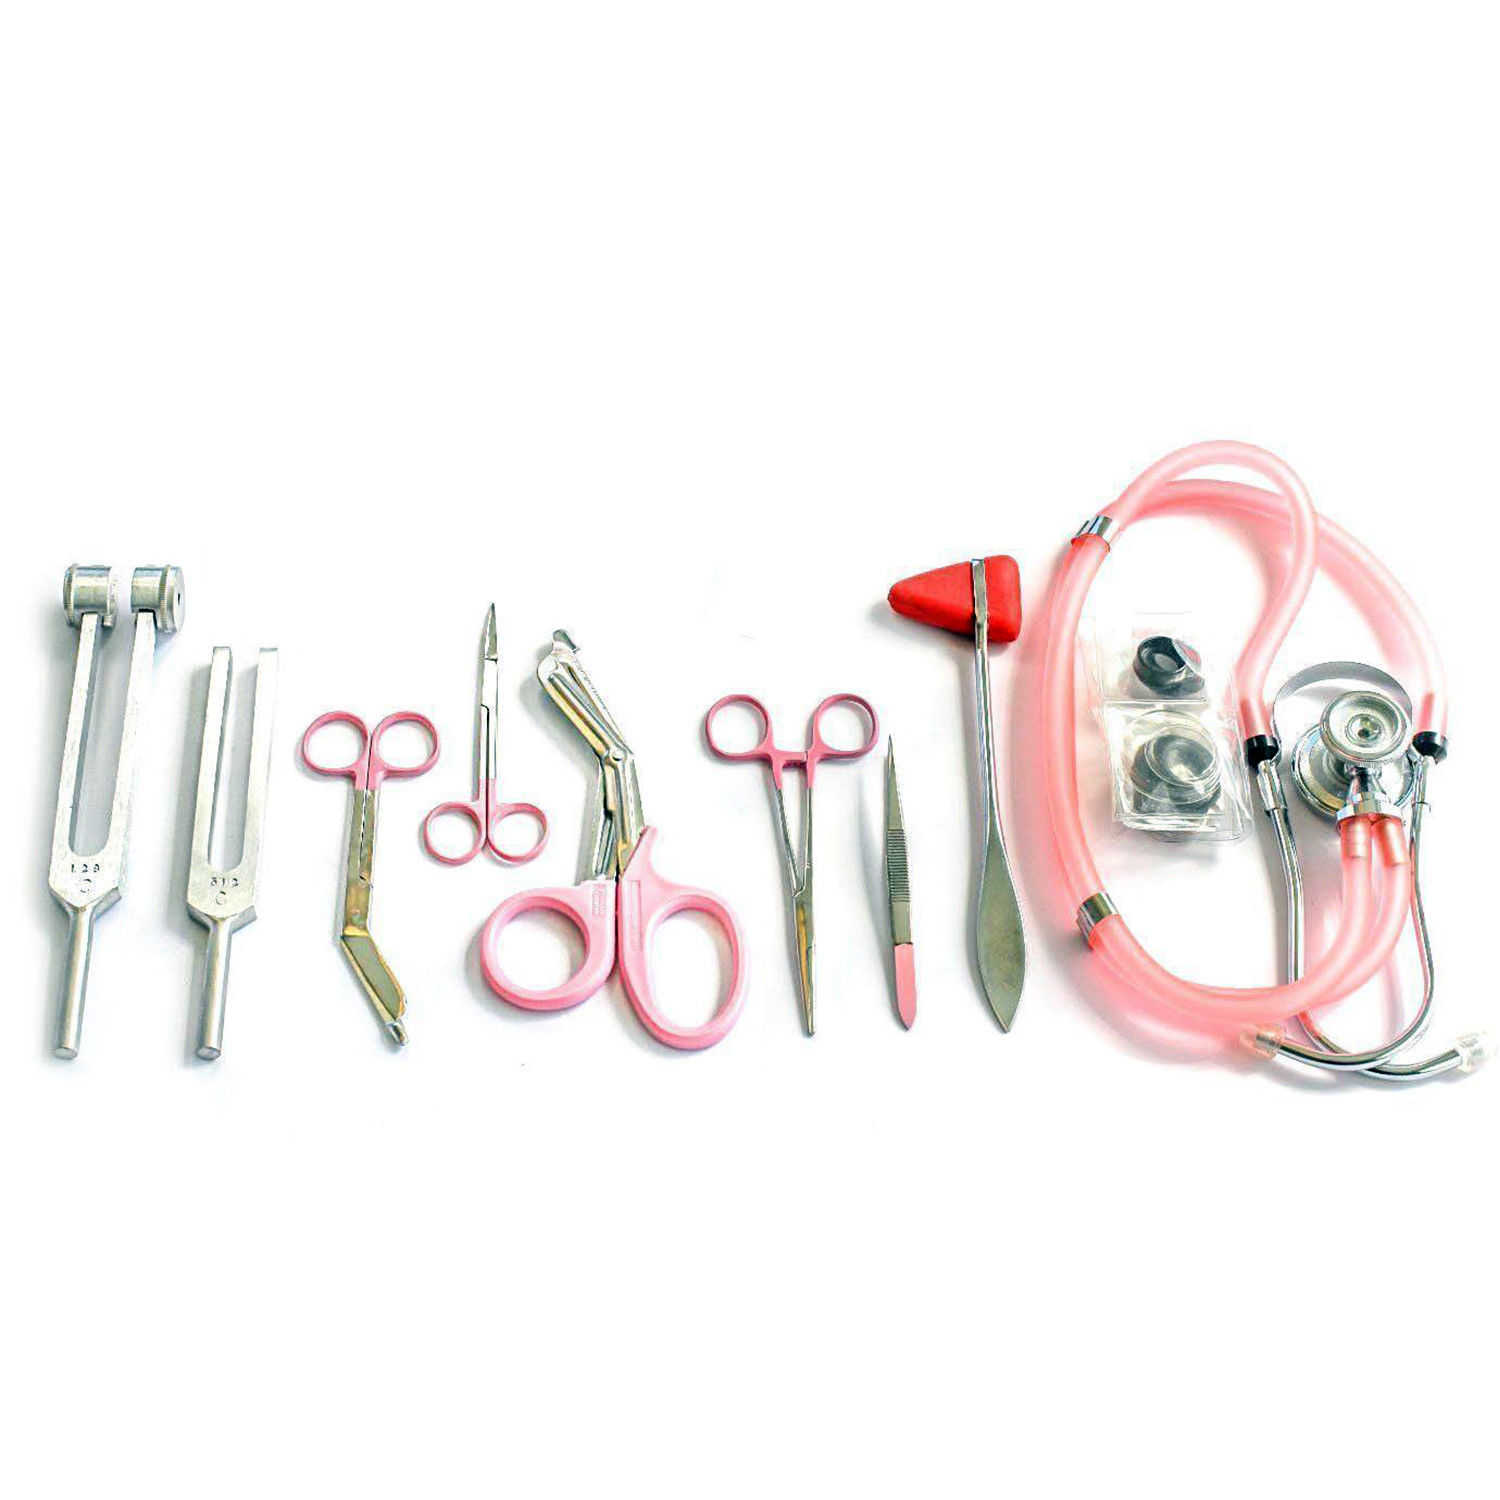 9 Piece Medical Diagnostic Kit in Pink Ideal for EMT, Nursing, Surgical, EMS